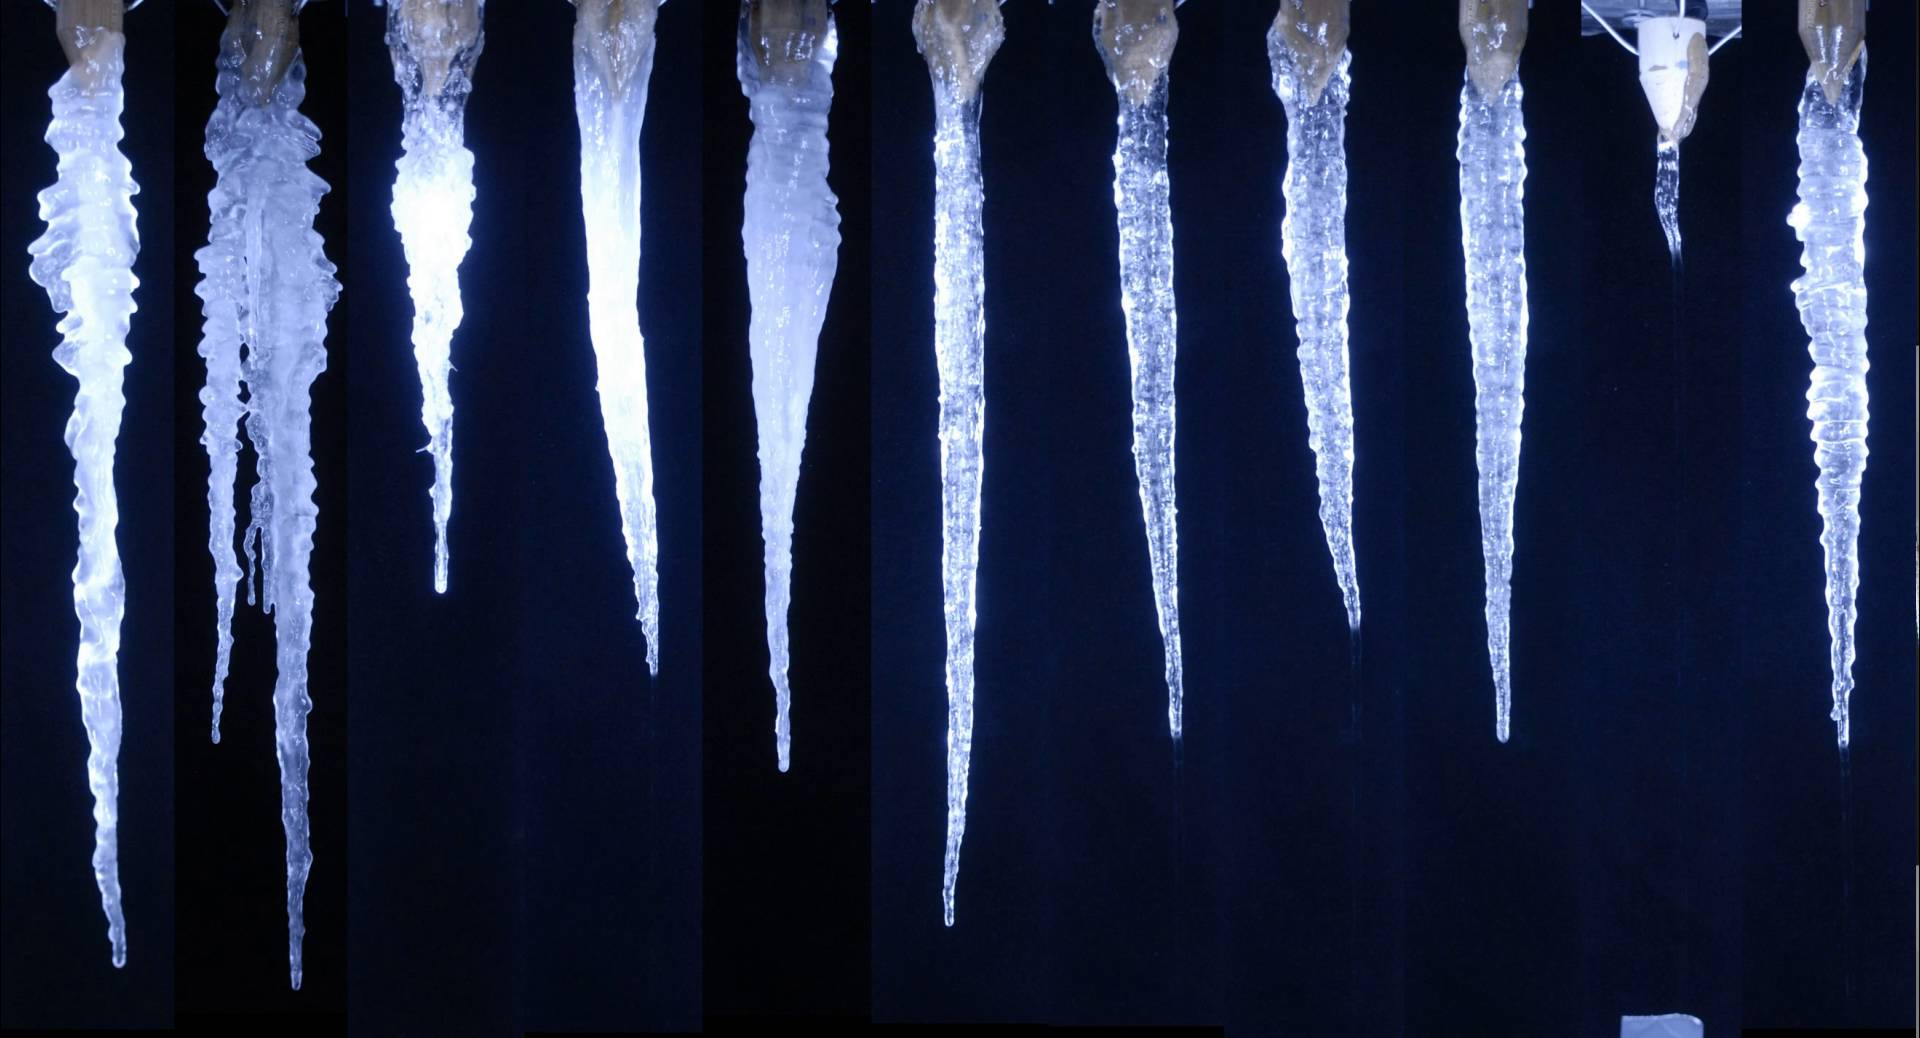 The growth of 11 random icicles from the Icicle Atlas (time lapse ...